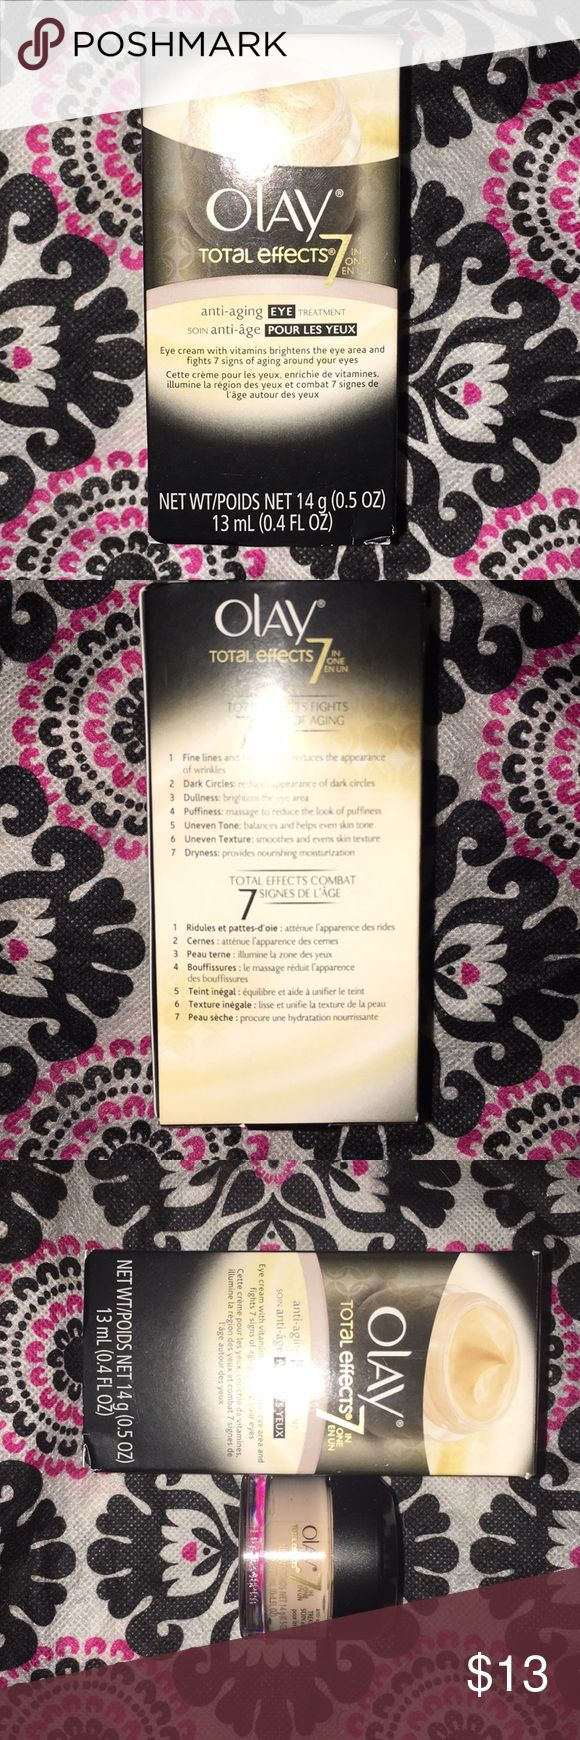 OLAY Total Effects 7 in 1 Anti-Aging Eye Cream OLAY Total Effects 7 in 1 Anti-Aging Eye Treatment Eye Transforming Cream. Brand new, still in box, never used! Retails for $24.99. Olay Total Effects Makeup